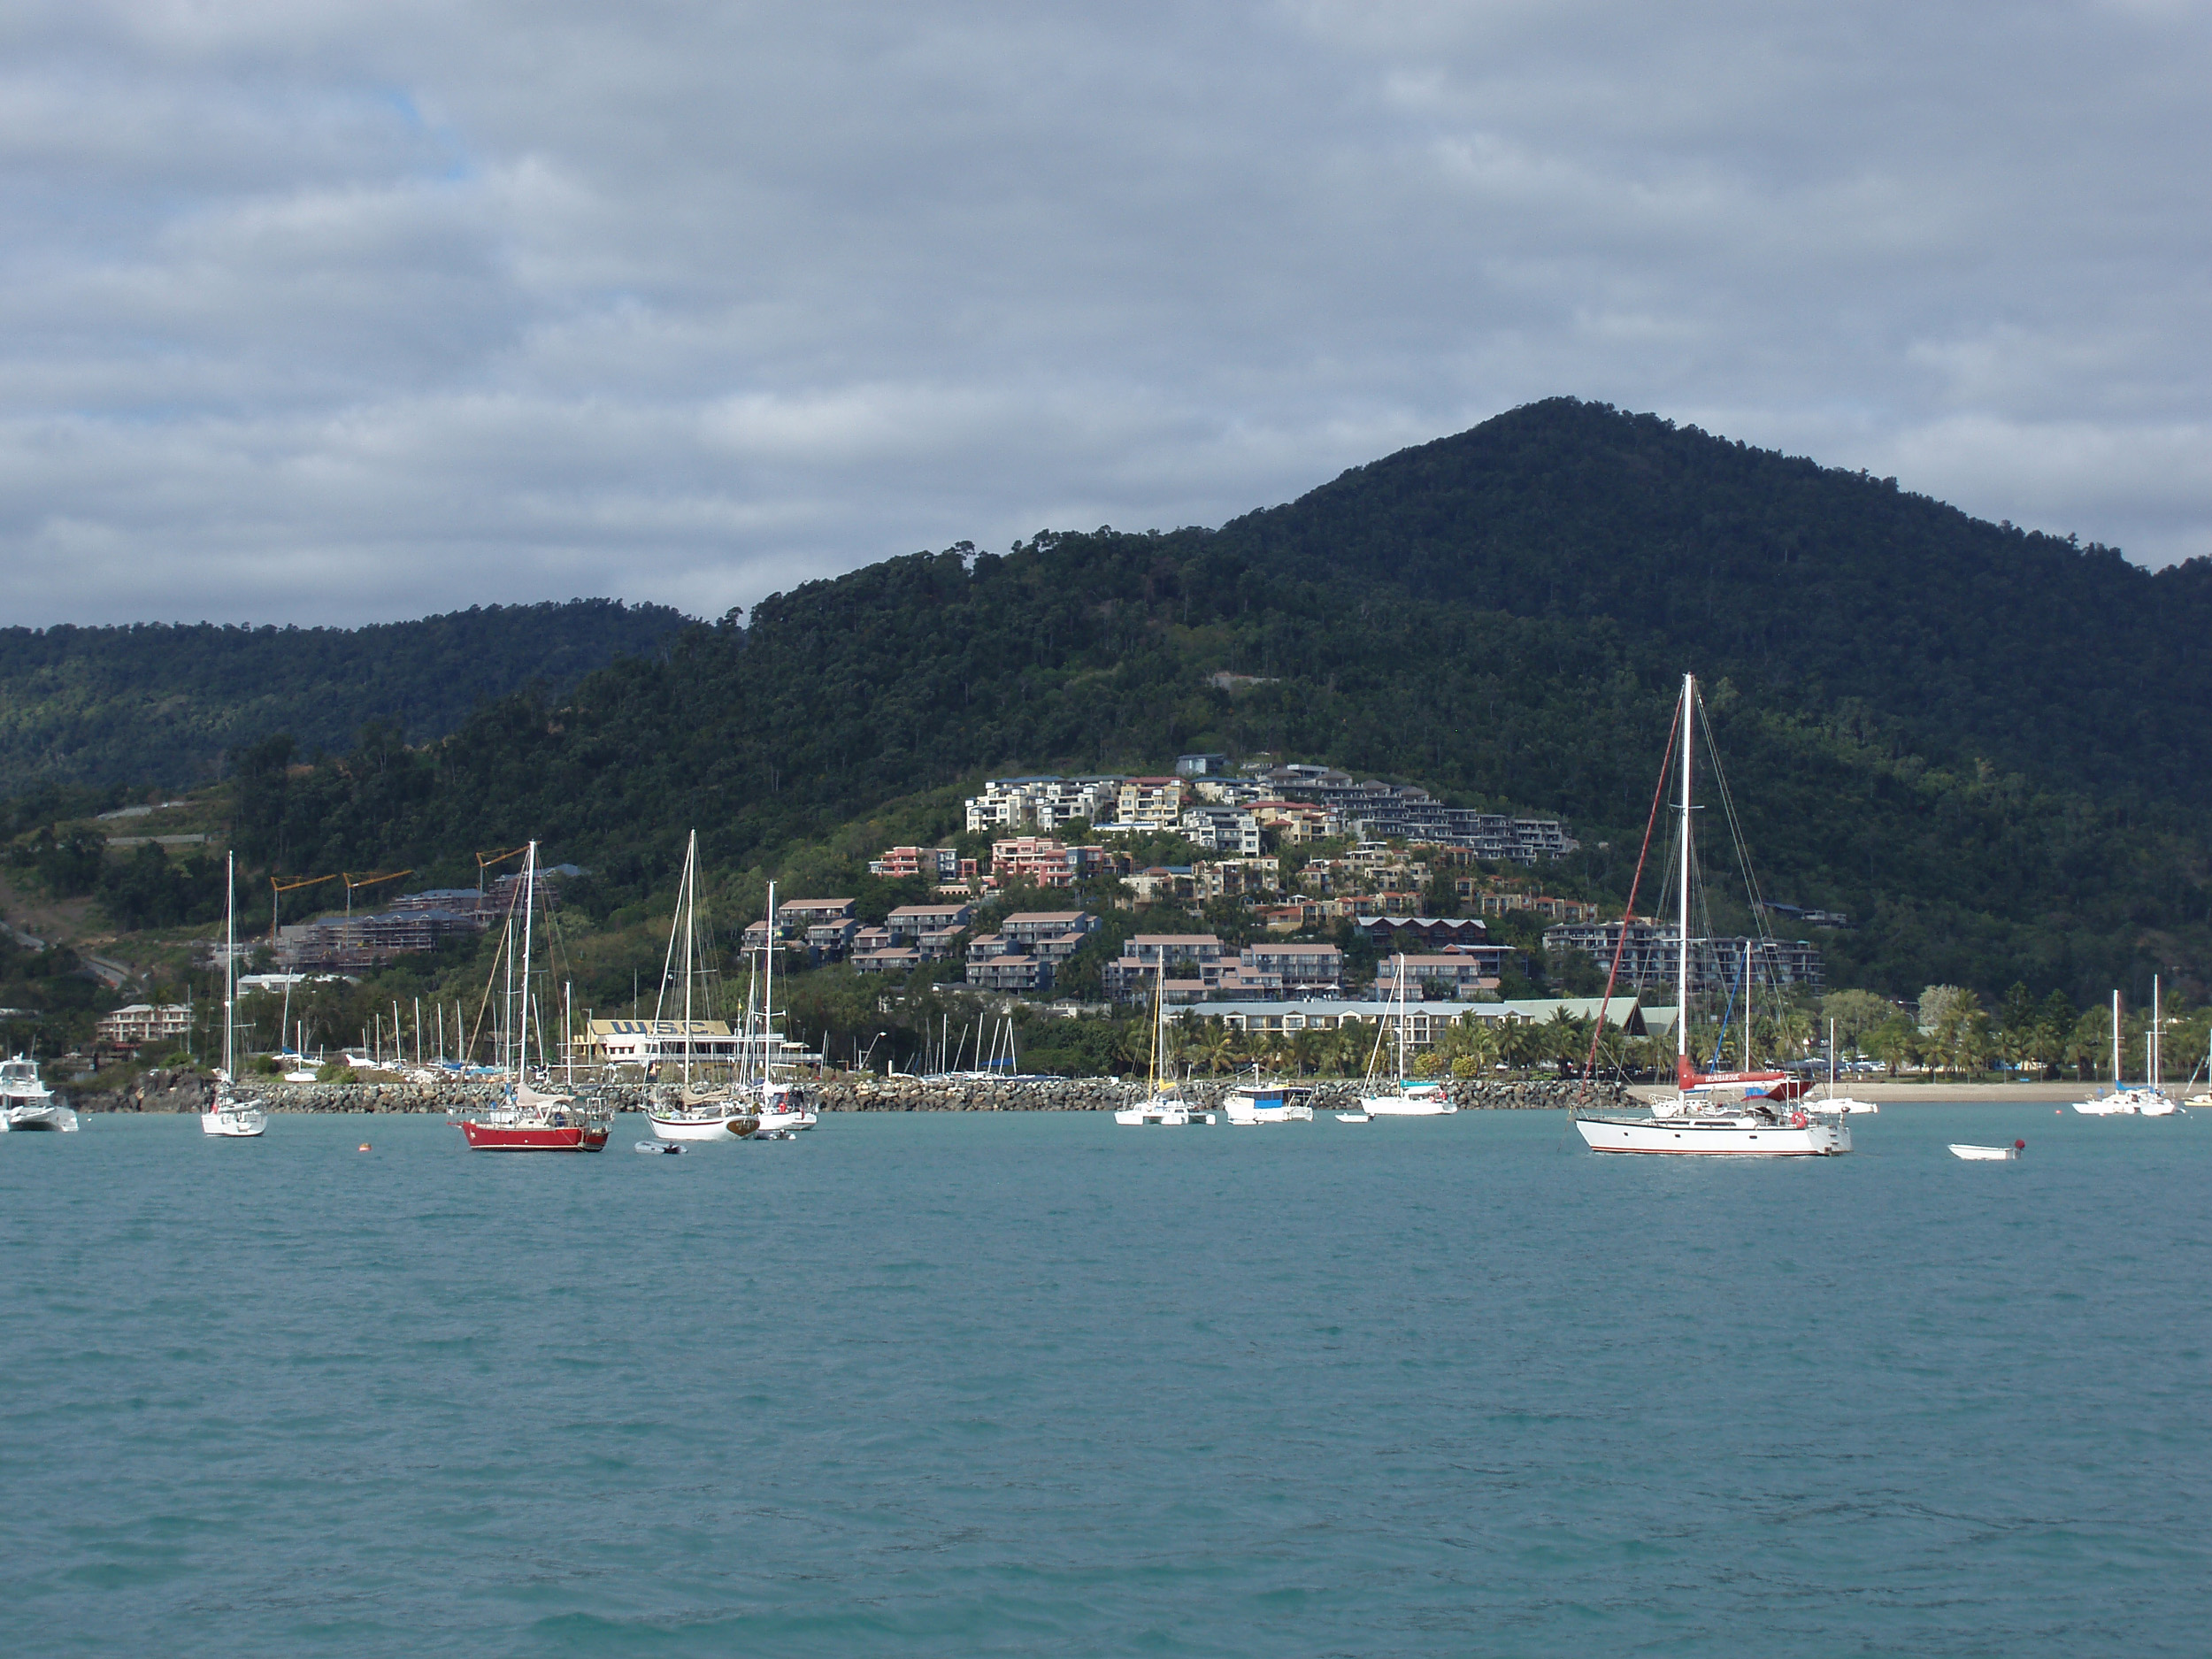 a view of airlie beach and boats moored along the shoreline